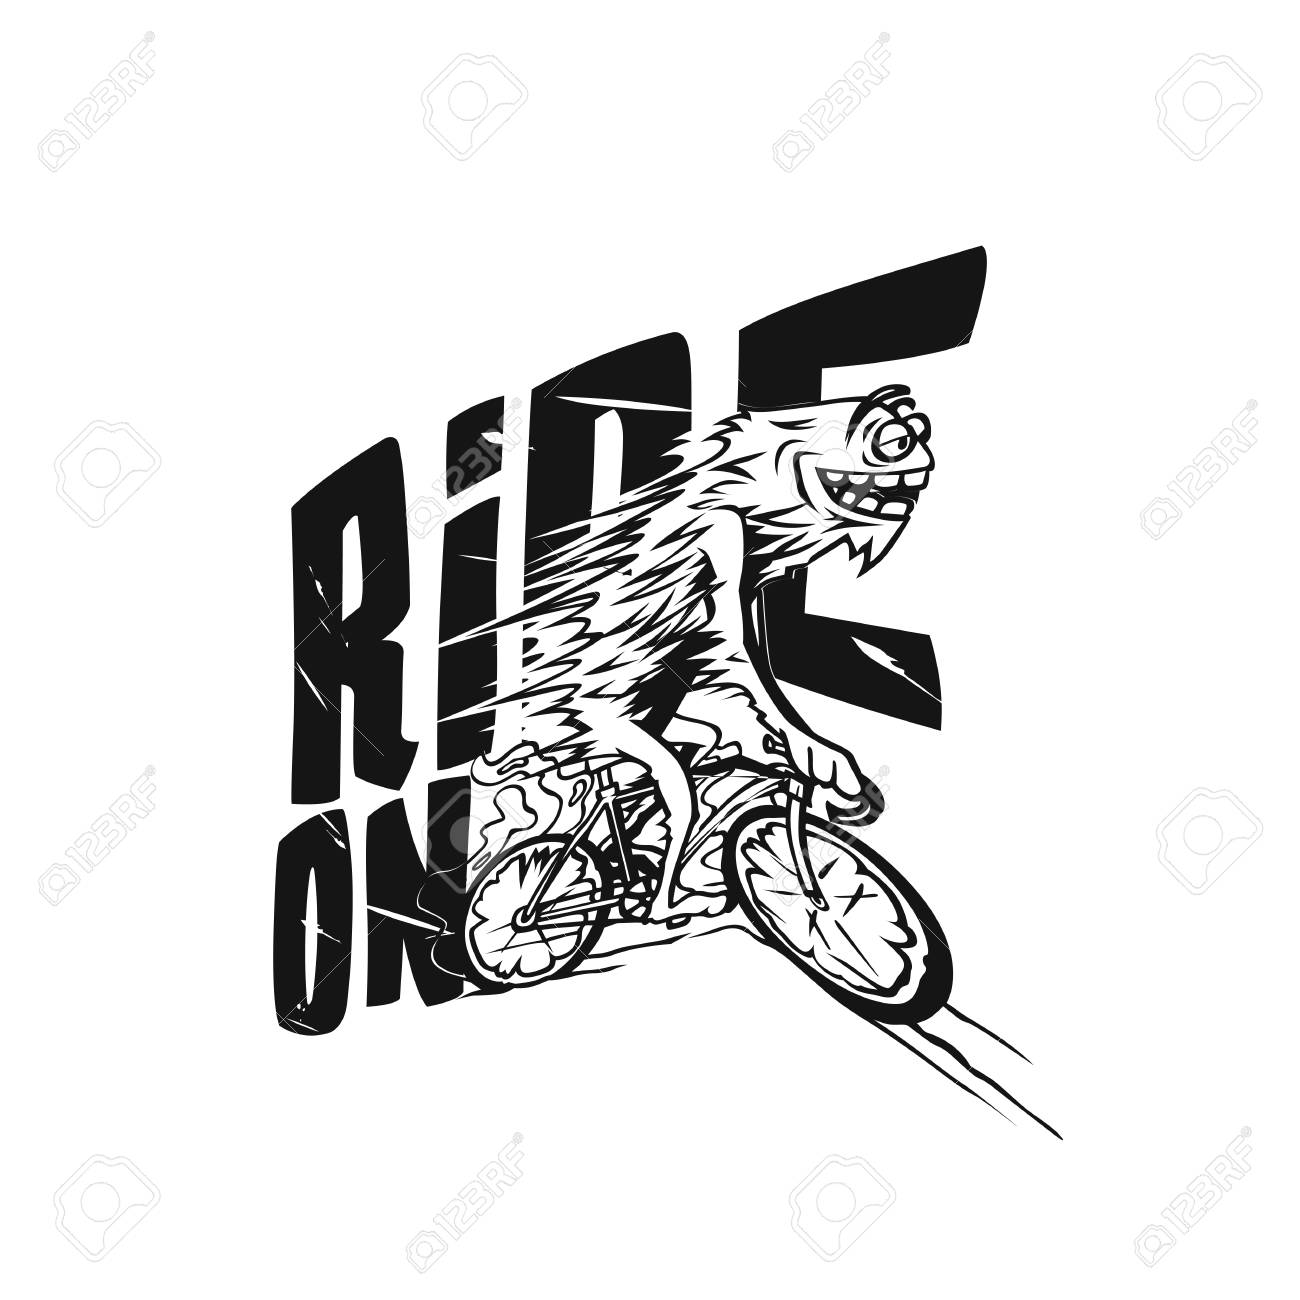 Faster cycling vector illustration design. - 95990854